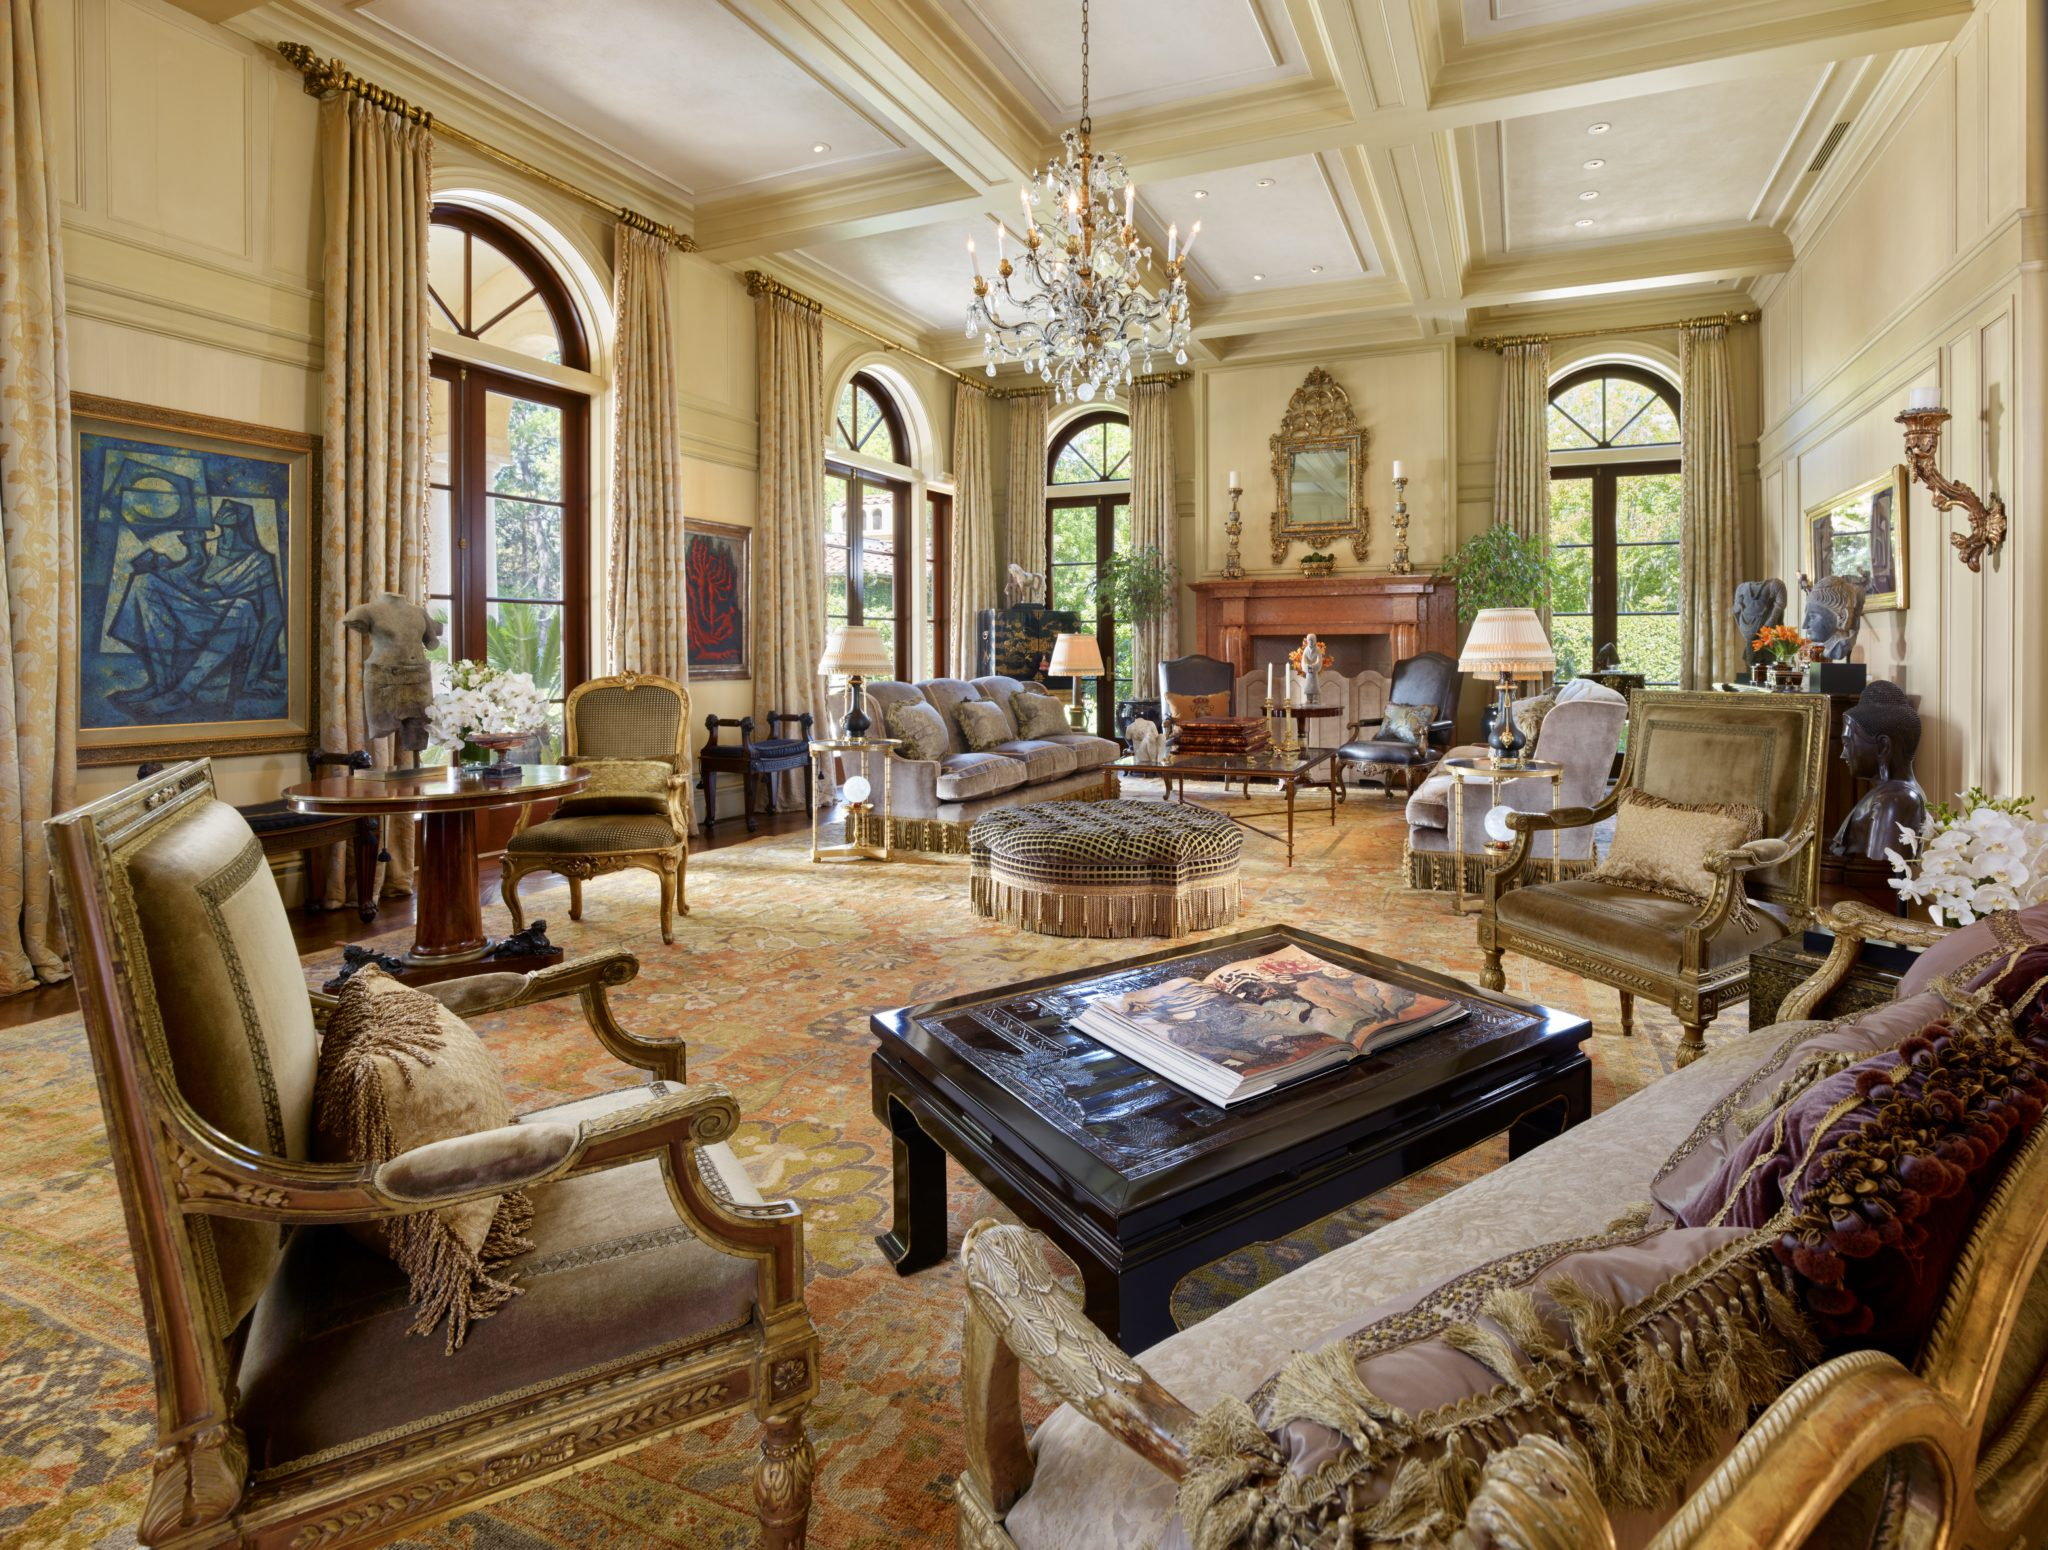 Refined mix - 17th & 18th century French, Italian antiques and custom furnishings. By David Kensington